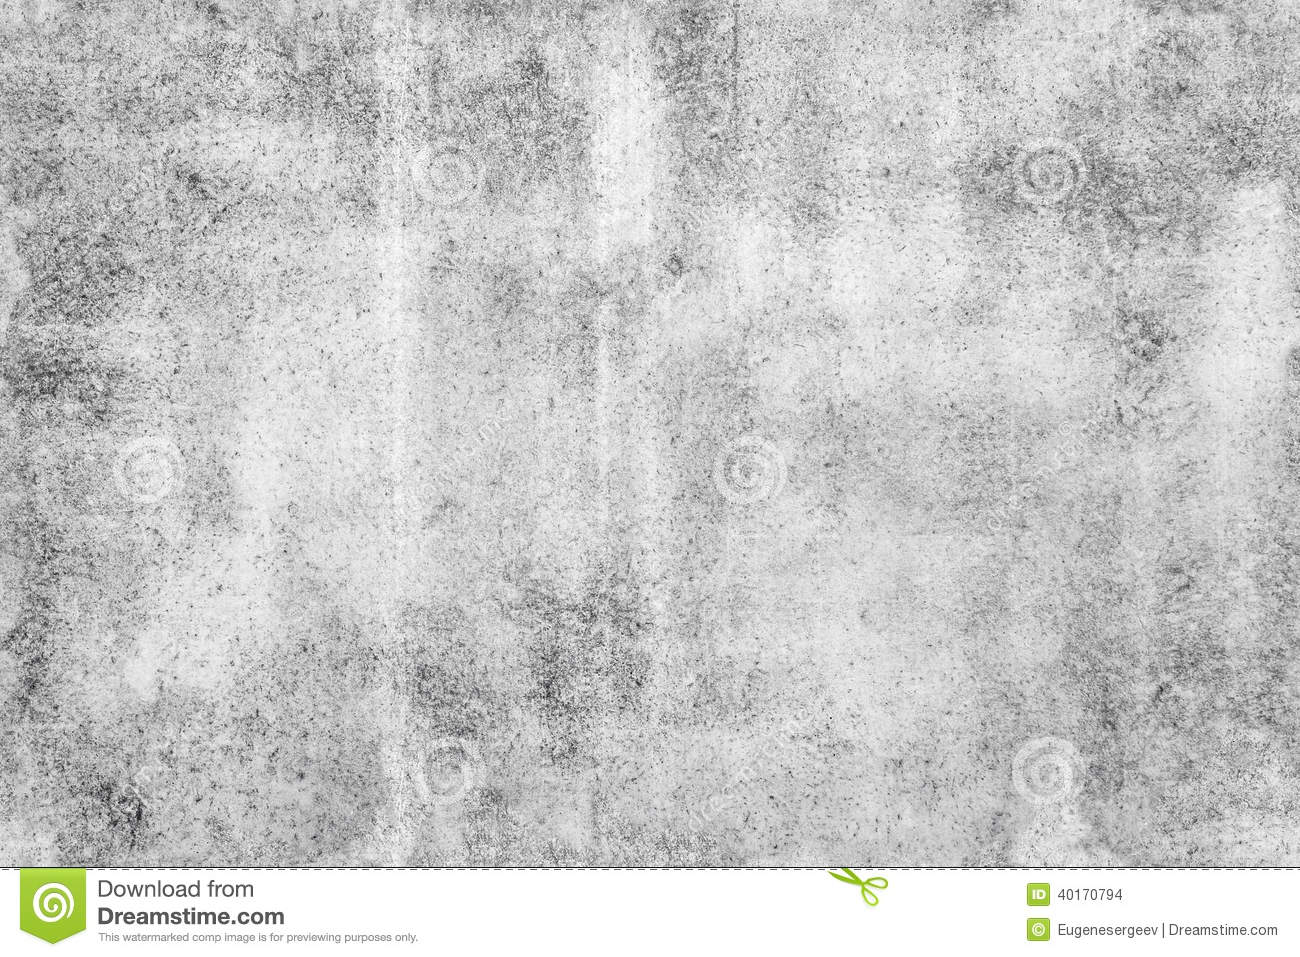 Jpg Texture Background Free Stock Photos Download 105 545: Seamless Gray Concrete Wall Background Texture Stock Photo